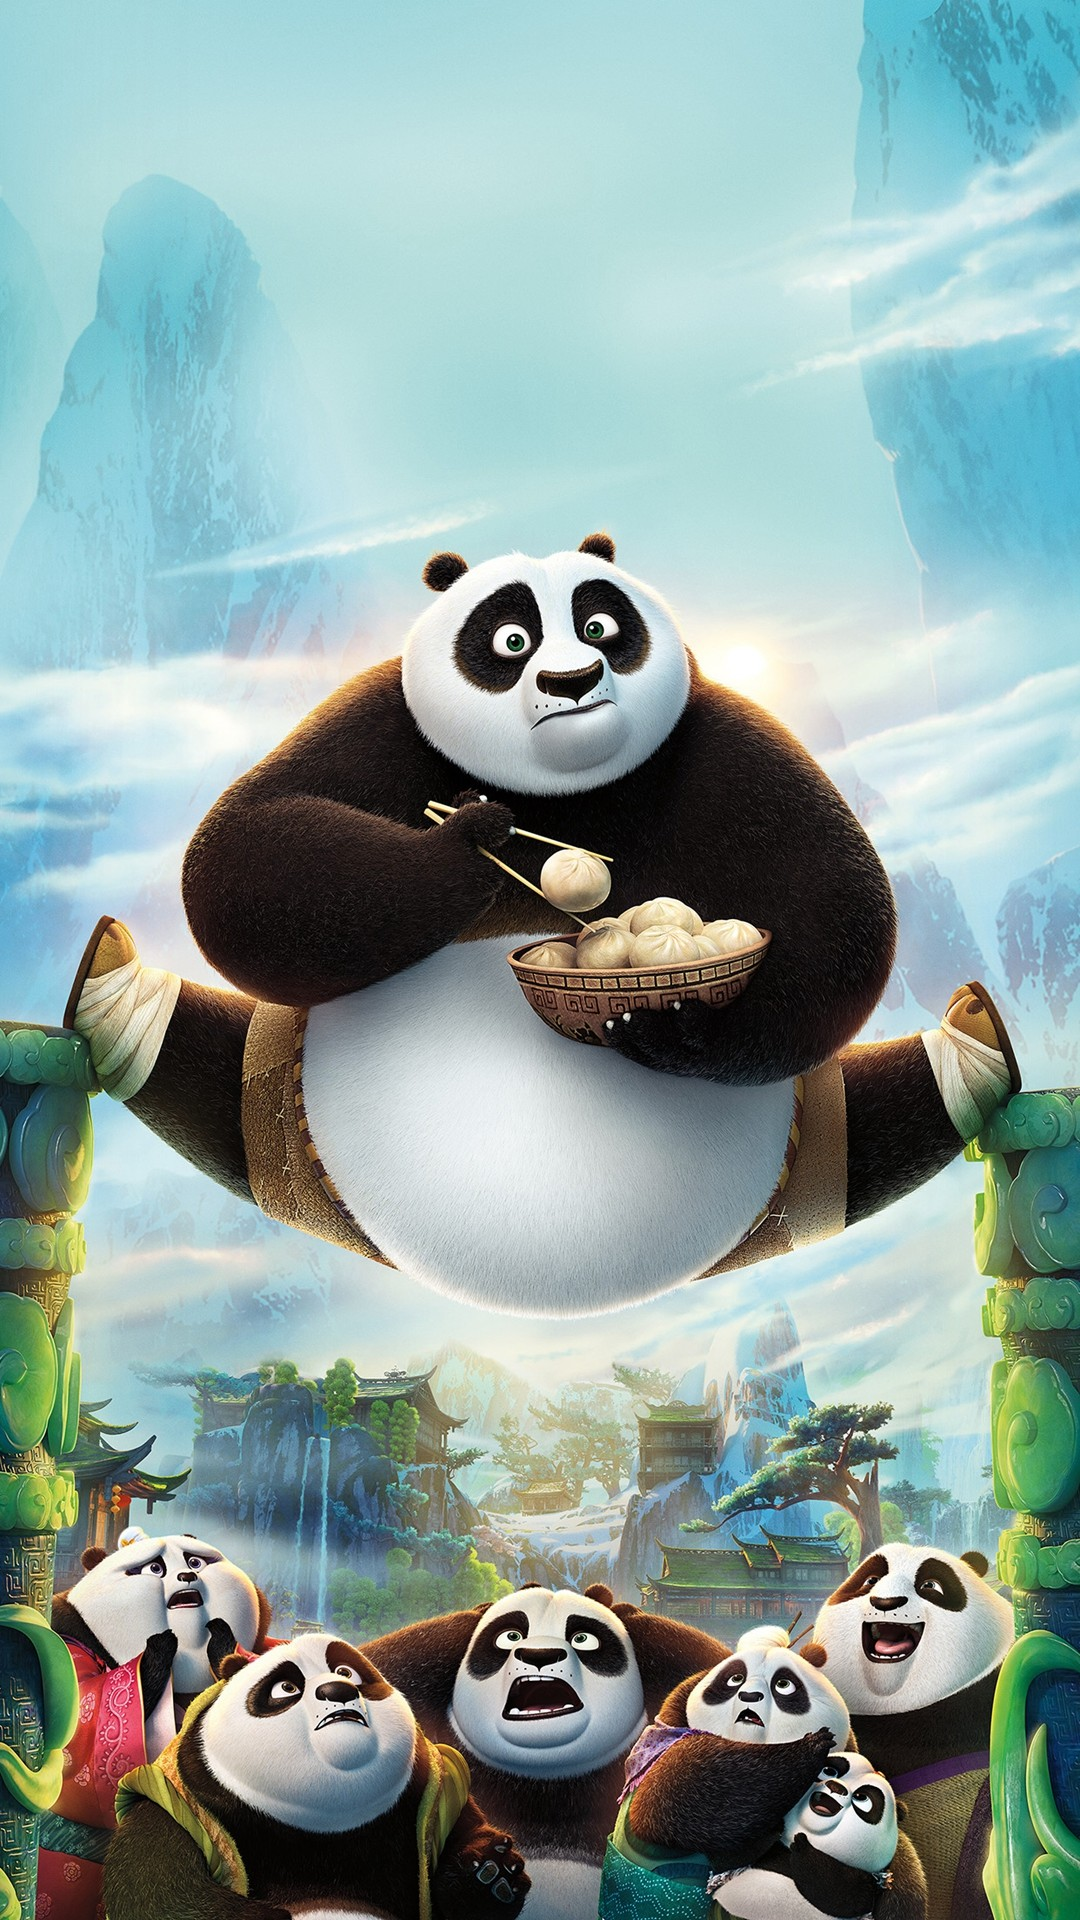 1080x1920 Kungfu Panda Art Illust Film Disney Iphone Wallpaper.